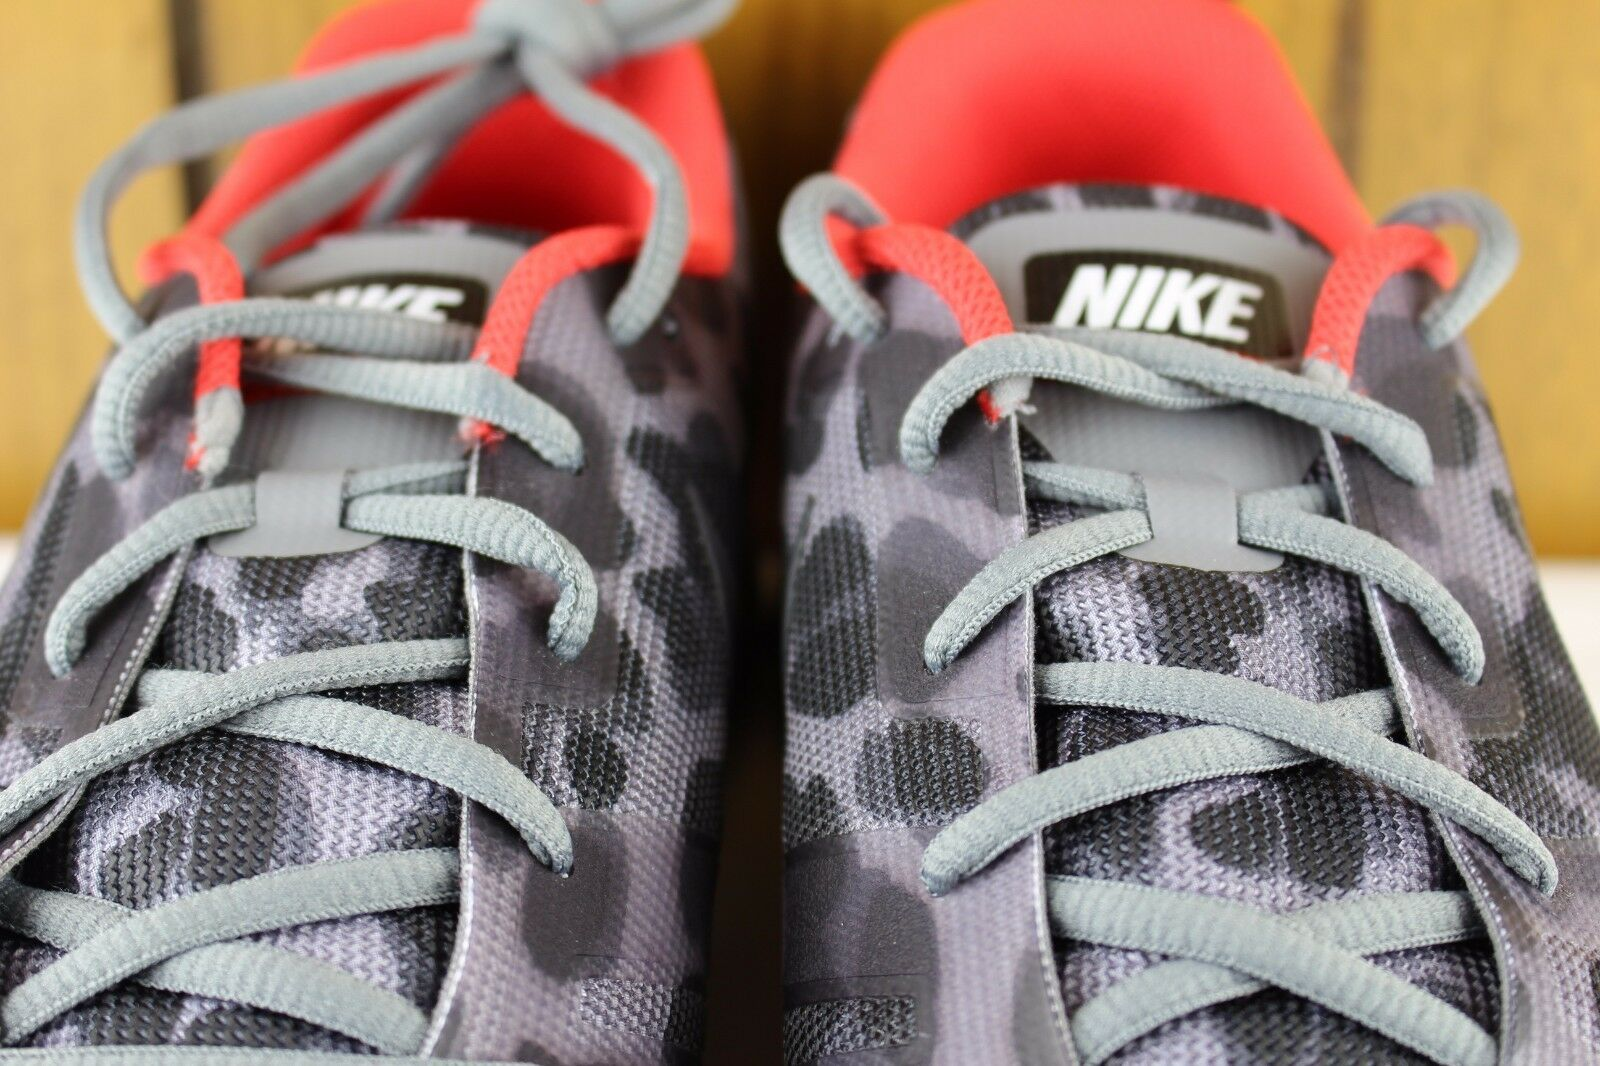 new concept 68981 eda37 ... NIKE ZOOM SPEED SPEED SPEED TRAIL LE COOL GREY SIZE 9.0 RUNNING NEW  AUTHENTIC! dc6114 ...